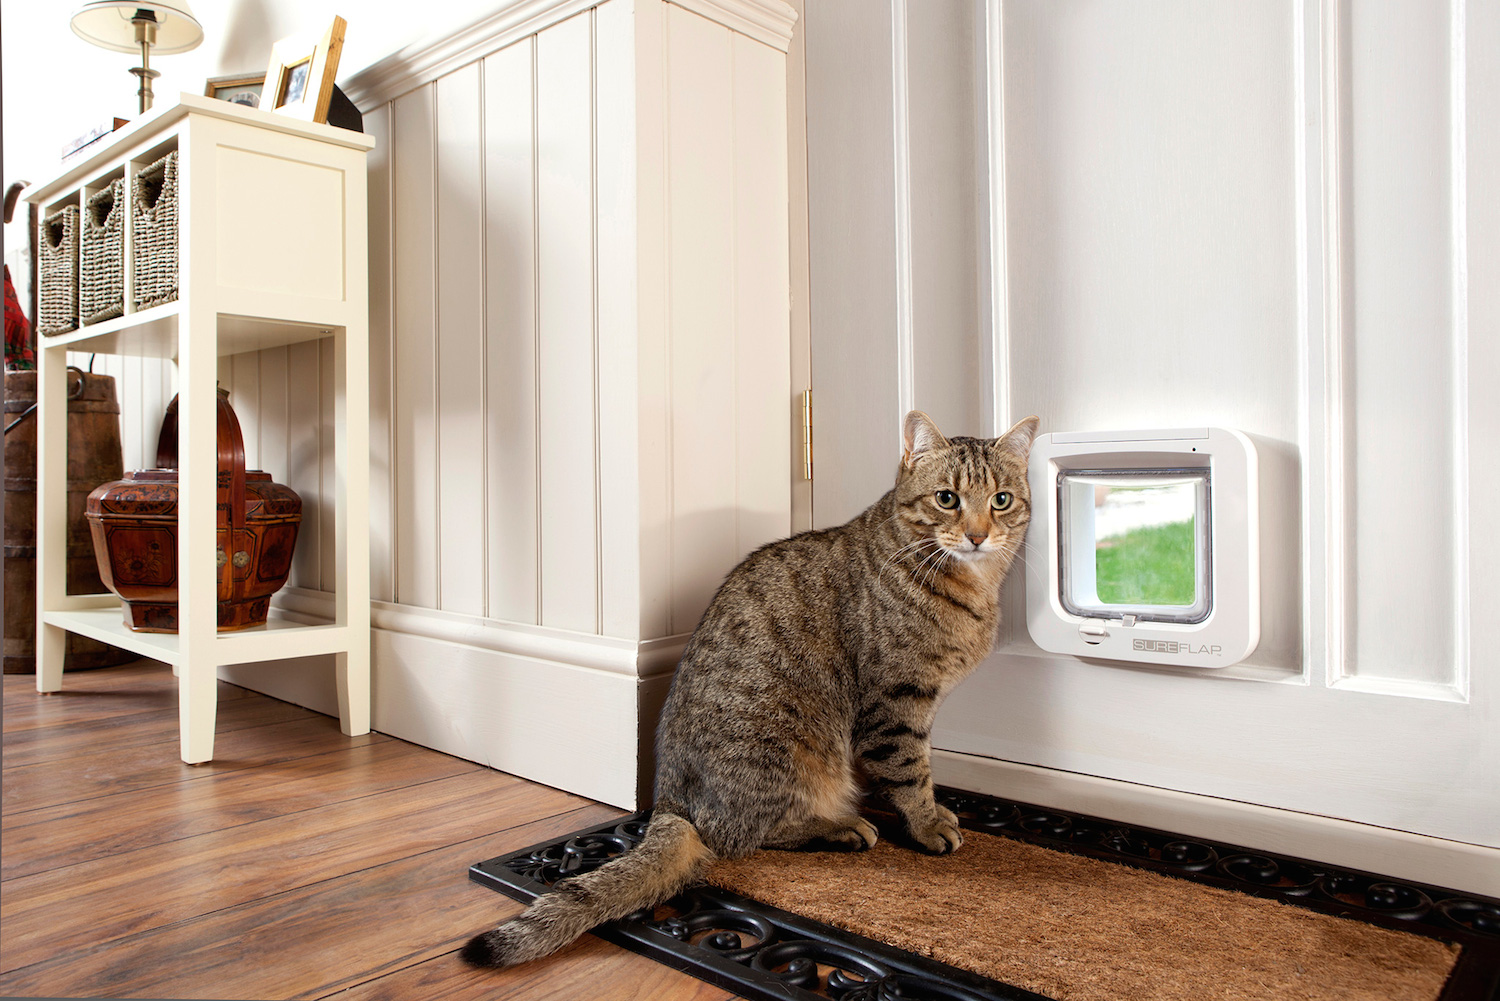 Check Out This Smart Pet Door That You Control Via Your